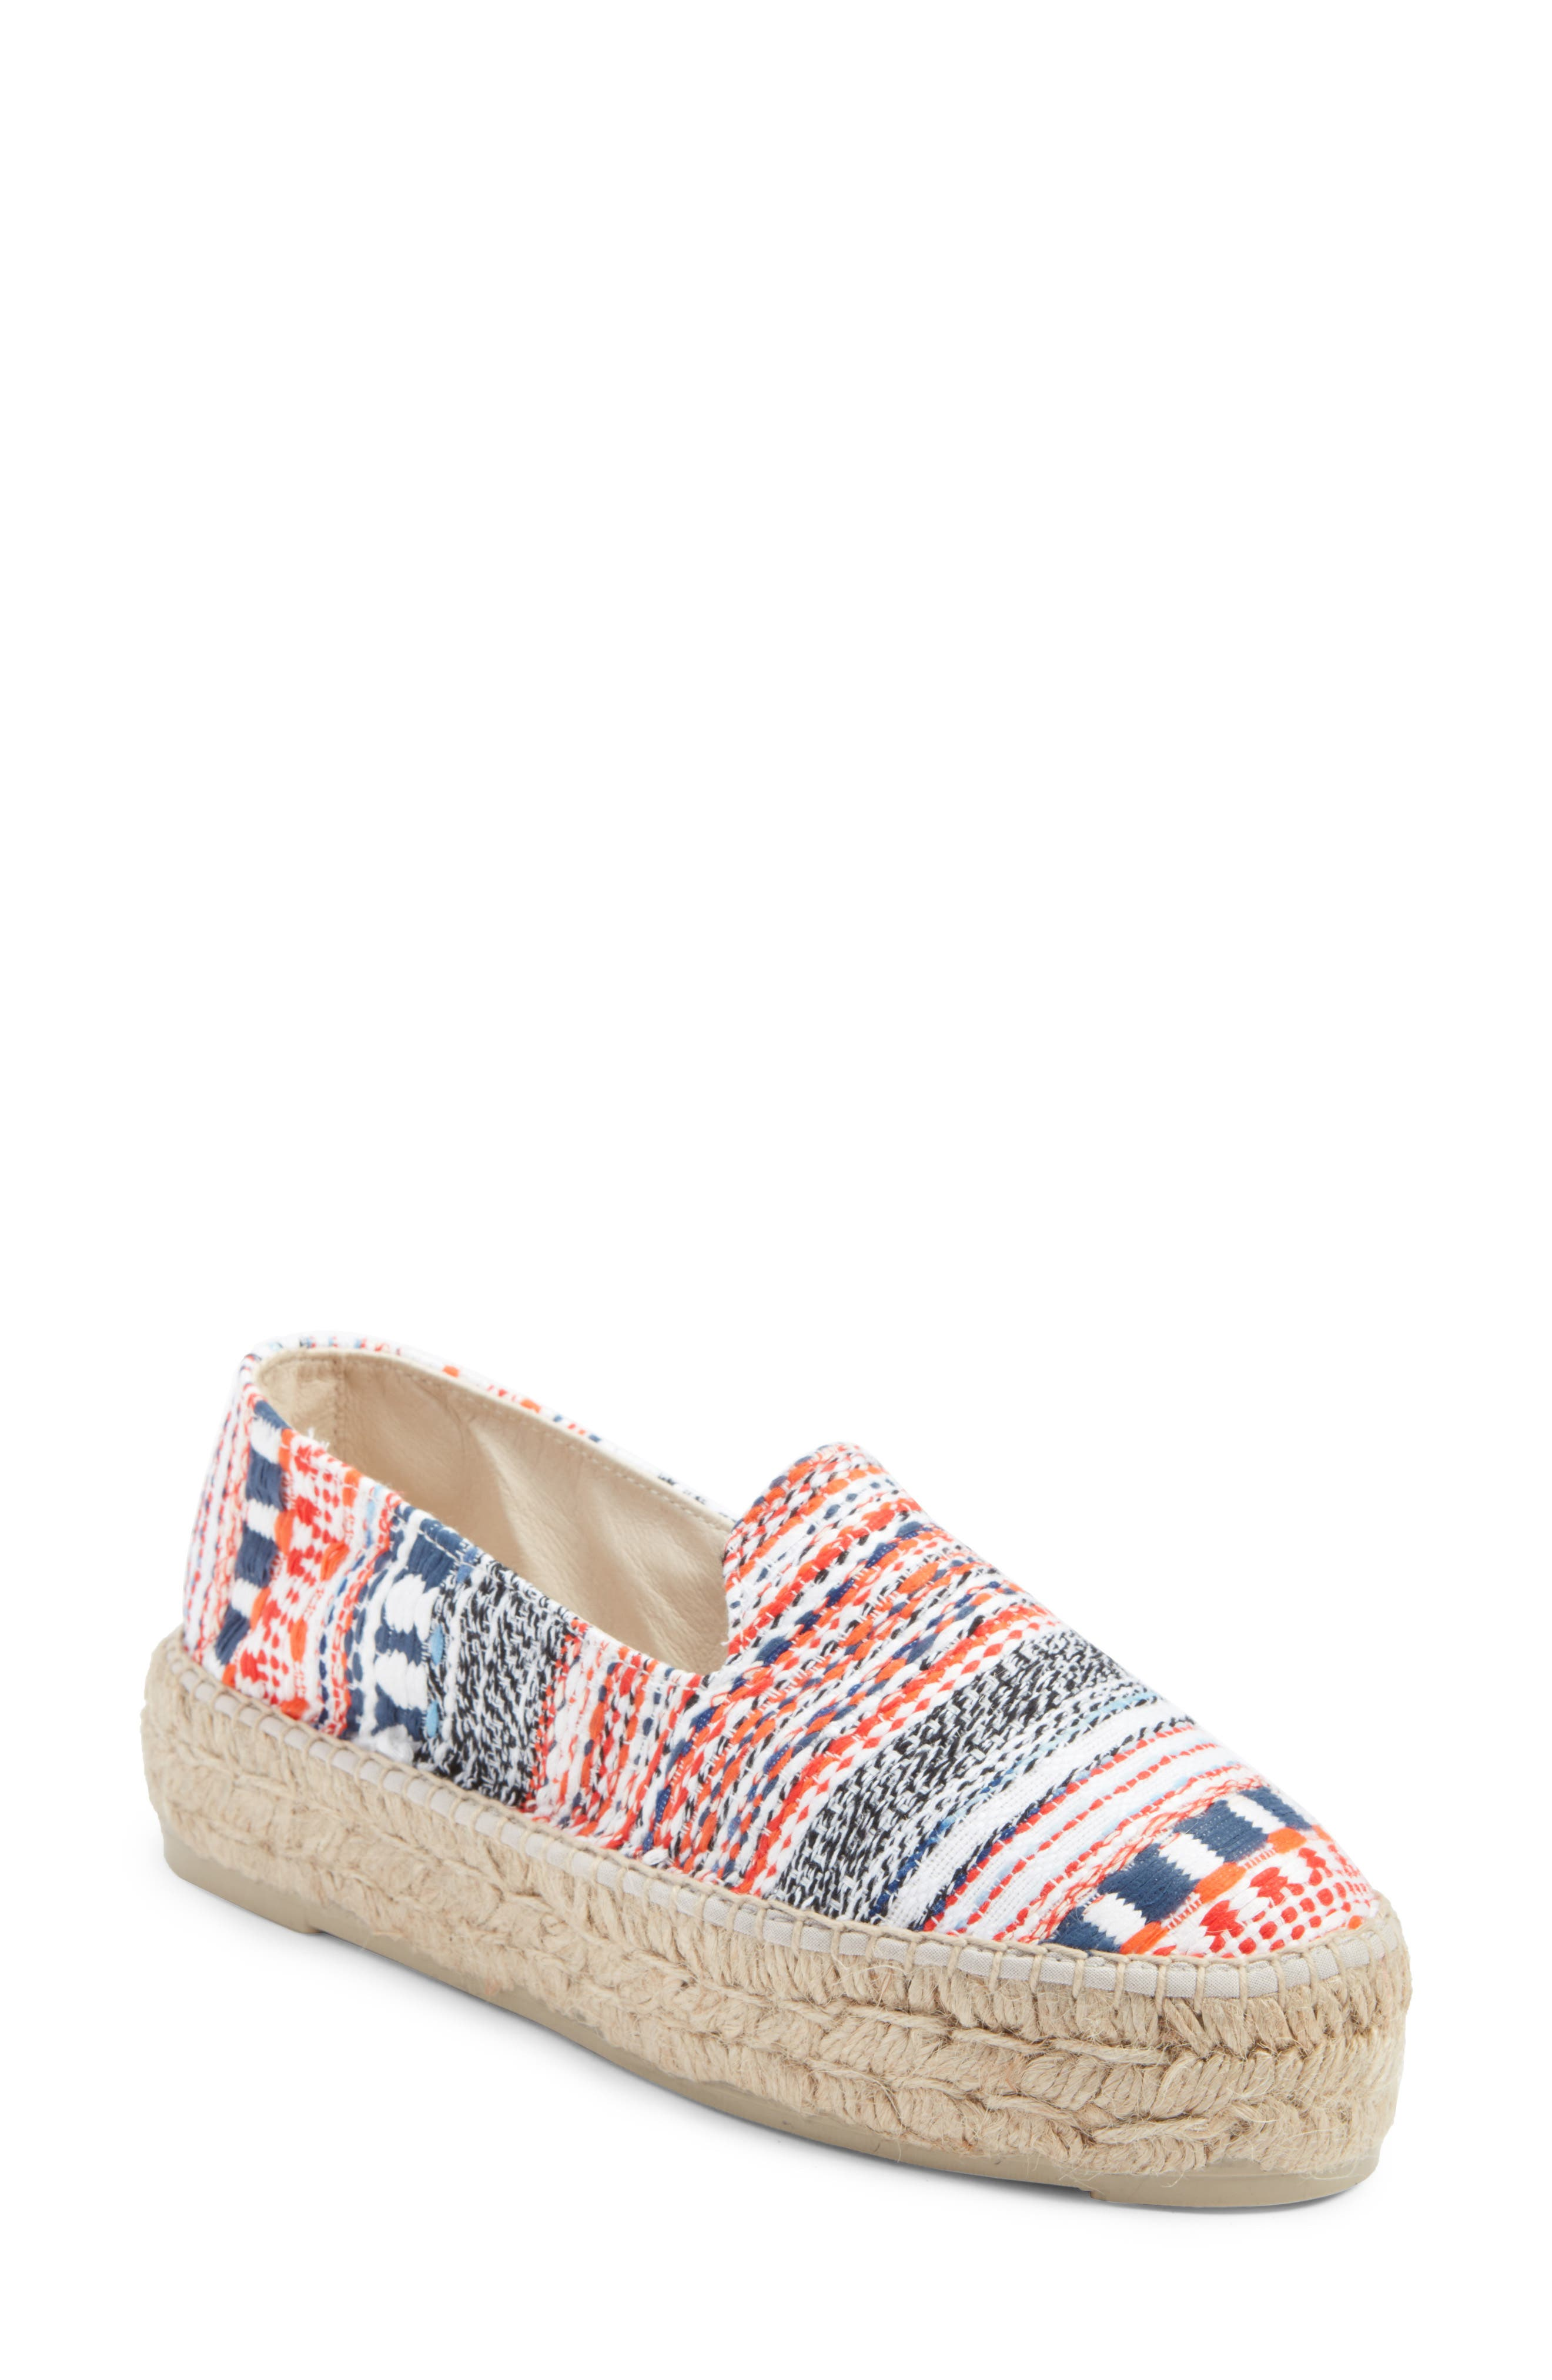 MANEBÍ Yucatan Platform Espadrille Slip-On,                             Main thumbnail 1, color,                             420